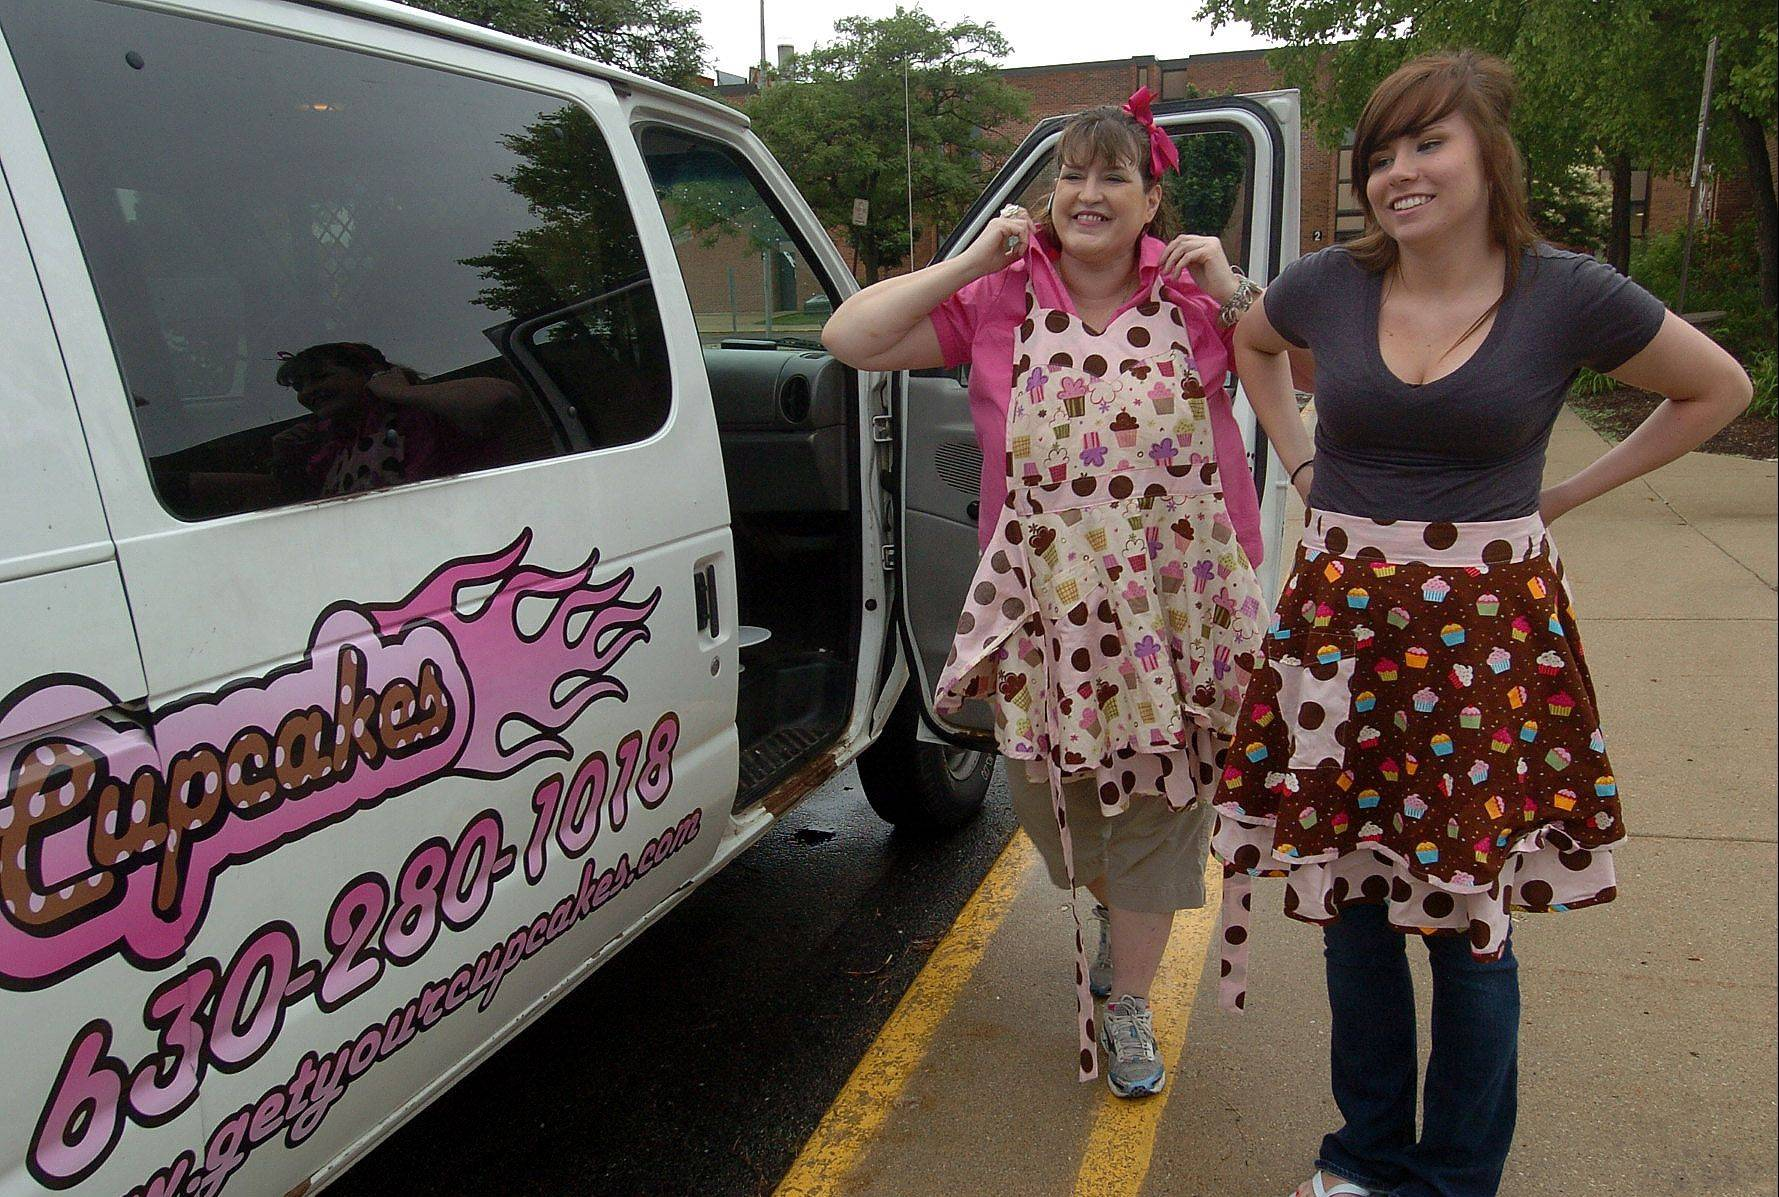 Angie DeFabis-Moeller, owner of Cruisin' Cupcakes, and her employee, Natalia Dabrowski, put on aprons before handing out samples to potential customers at a Schaumburg youth baseball game. DeFabis-Moeller says her cupcake truck has been wildly successful.